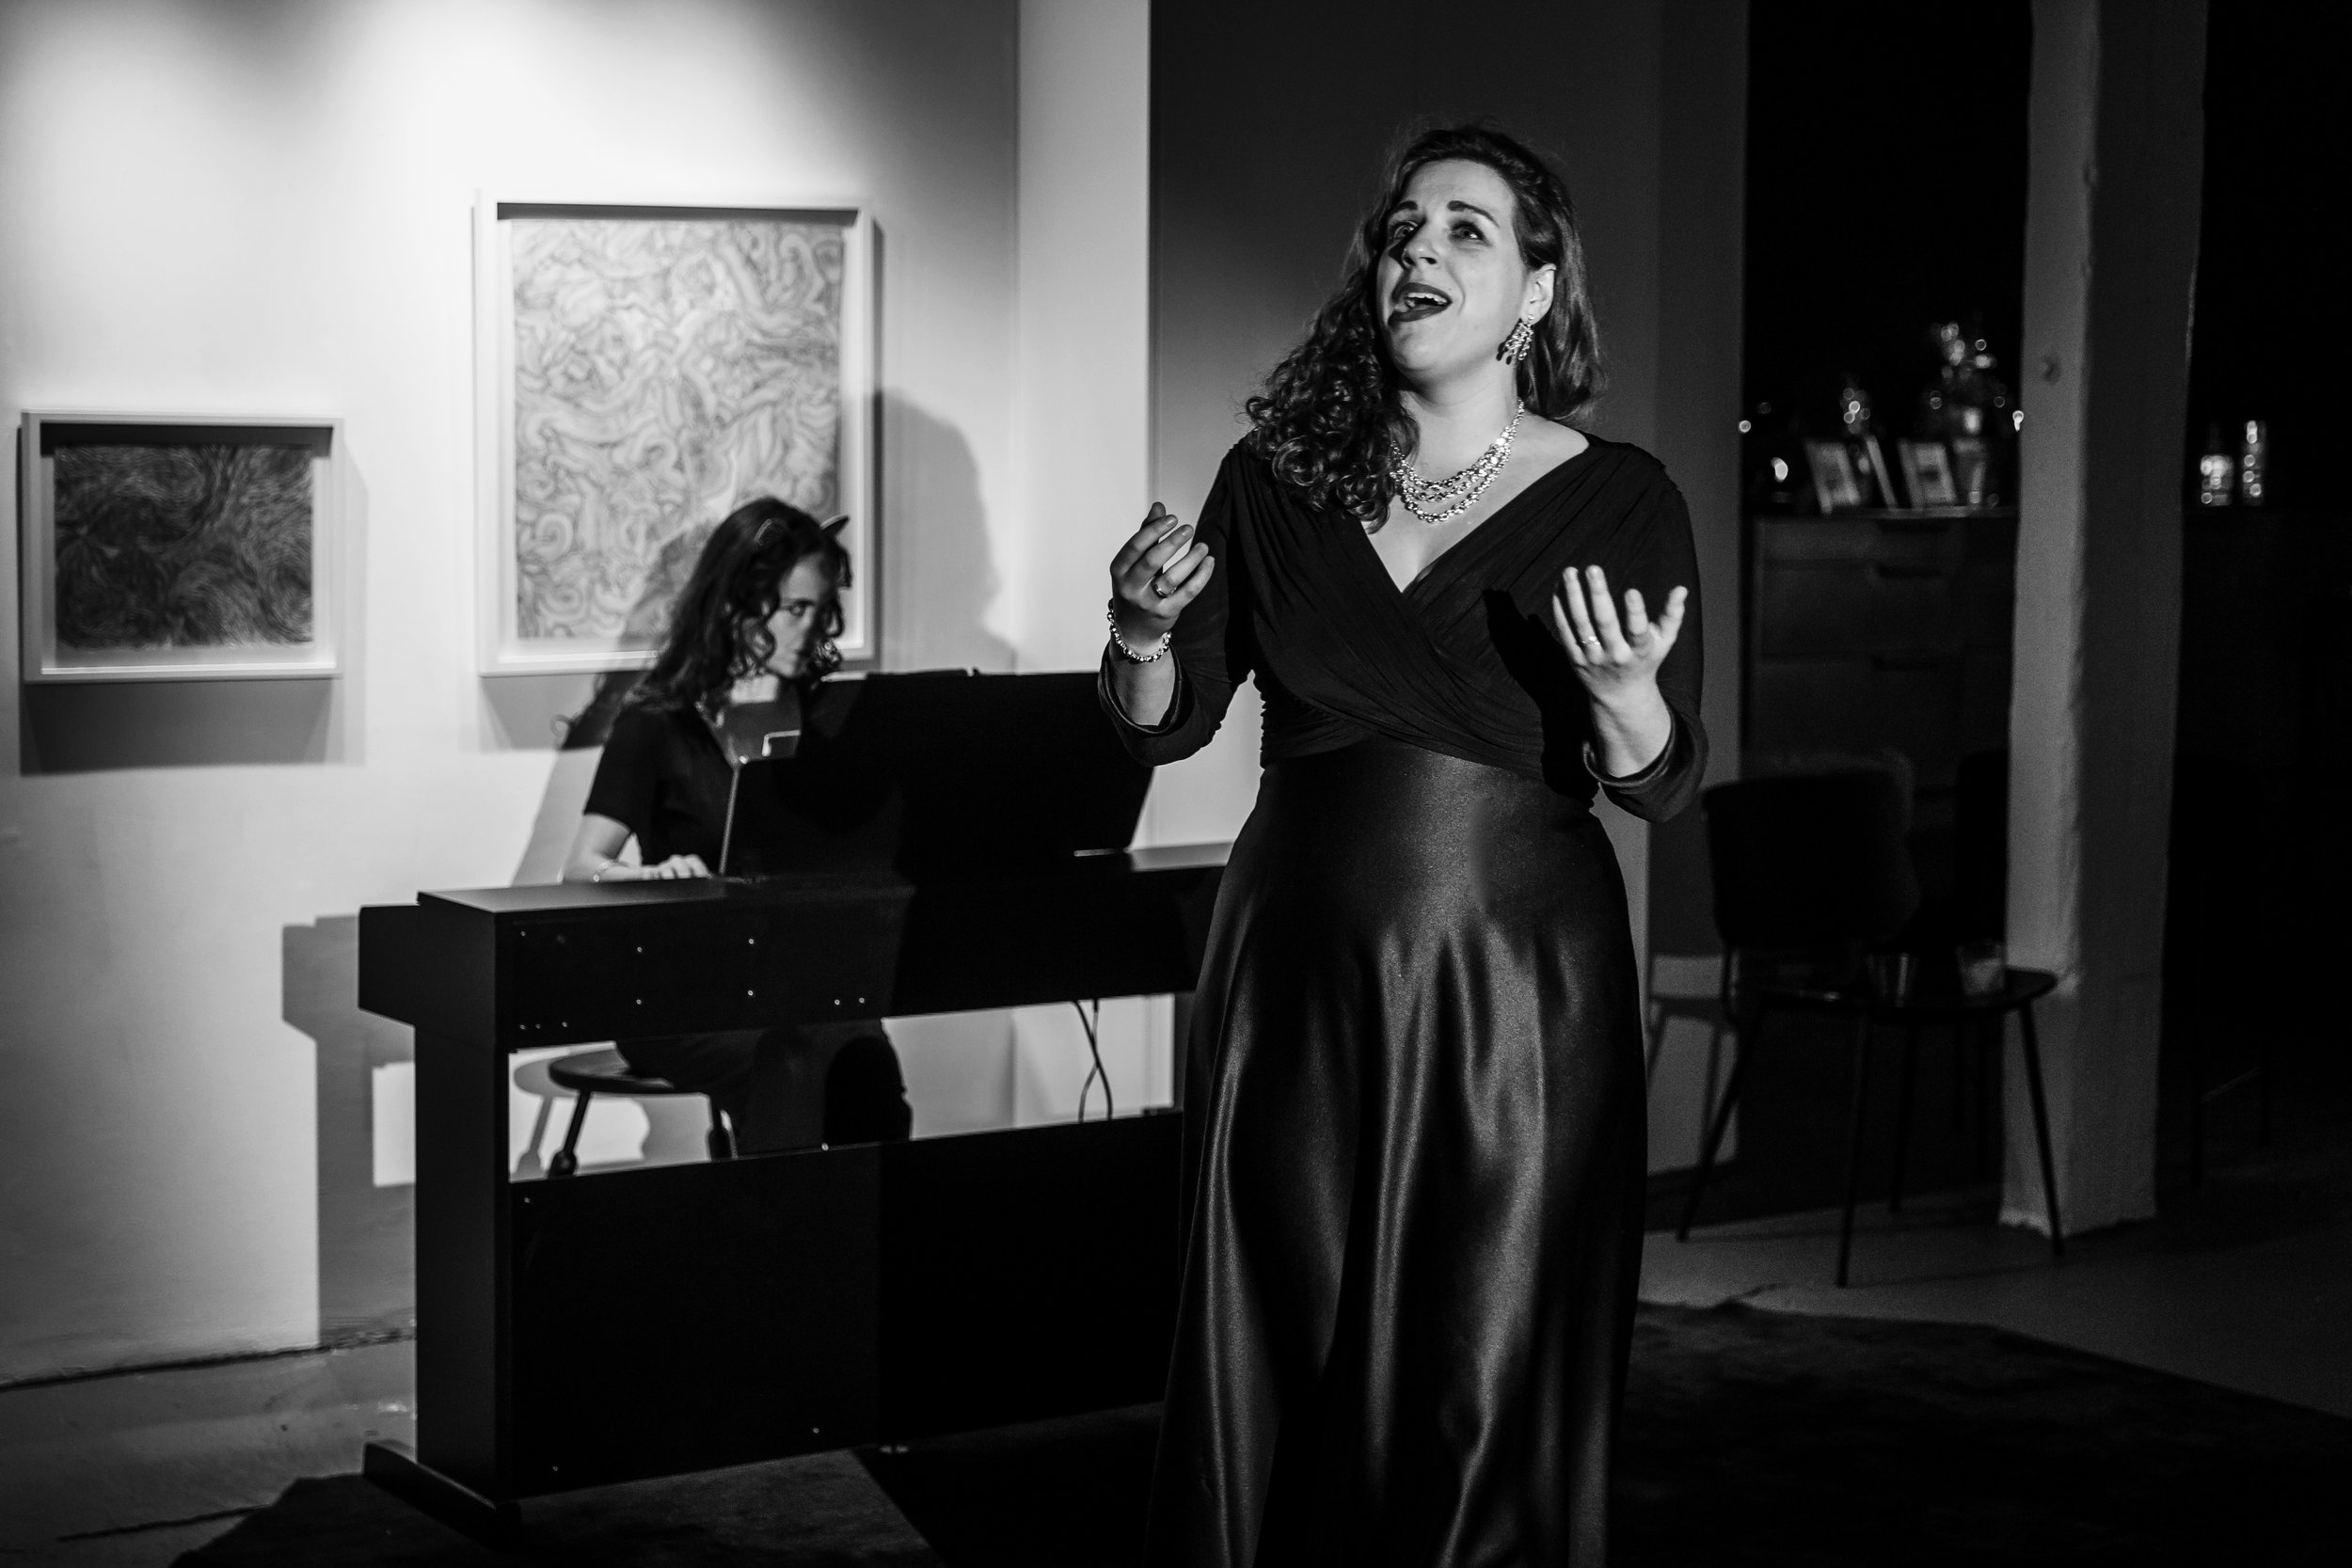 The Governess's aria from Turn of the Screw with pianist, Laetitia Ruccolo